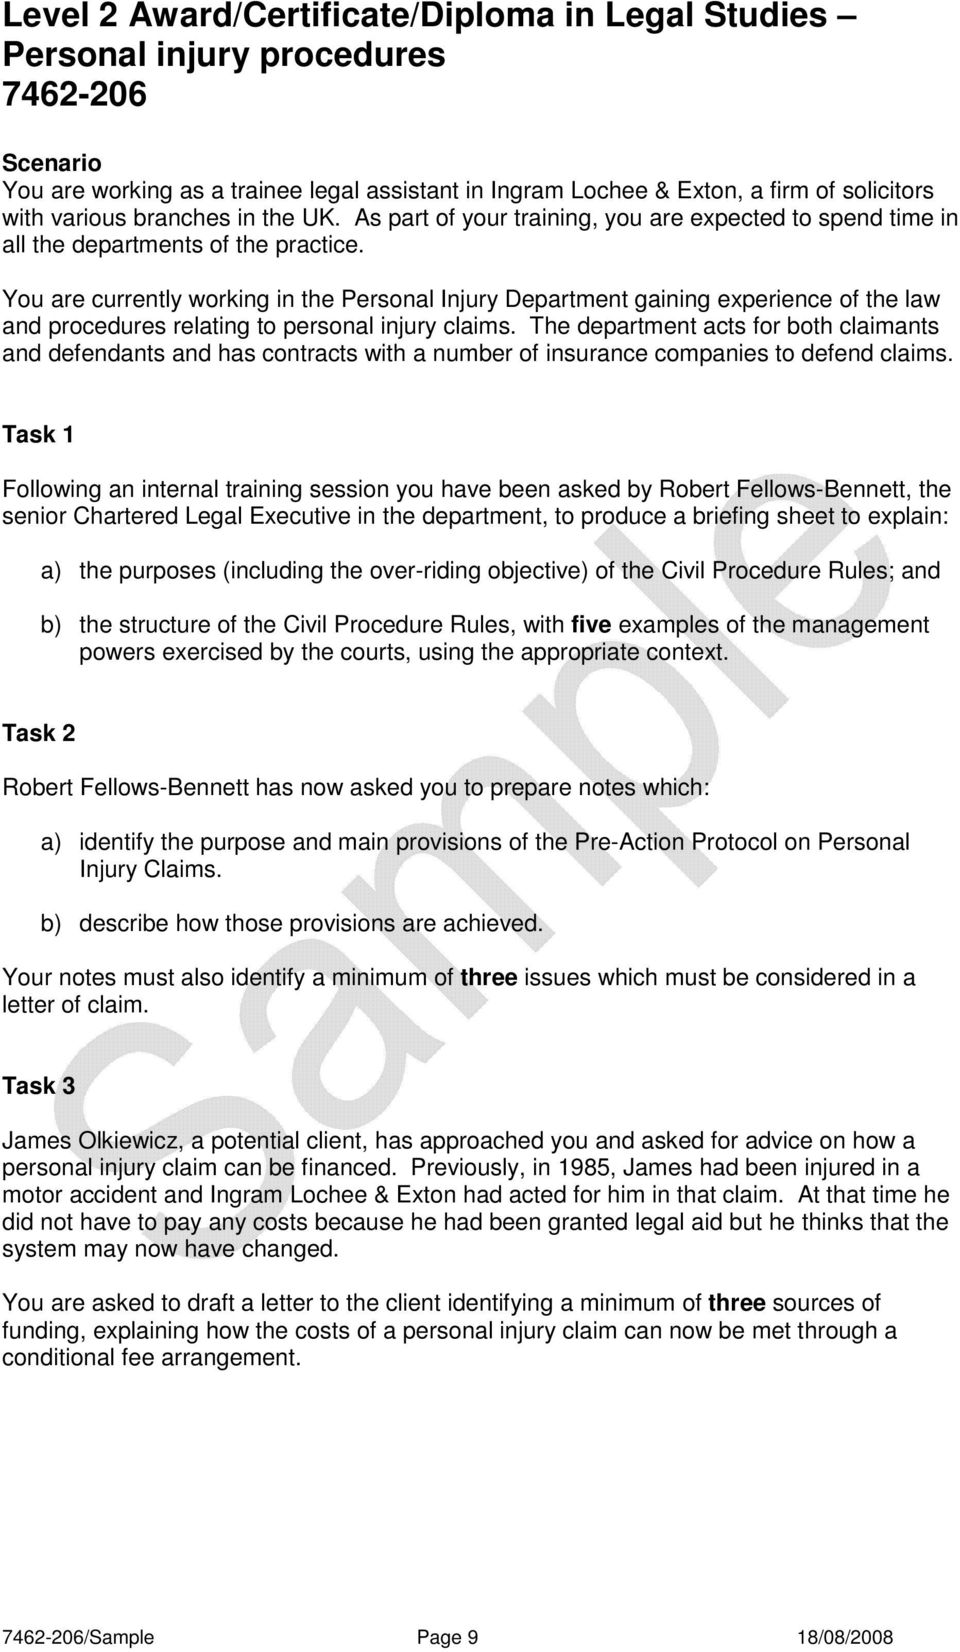 Level 2 award certificate diploma in legal studies for Pre action protocol letter template